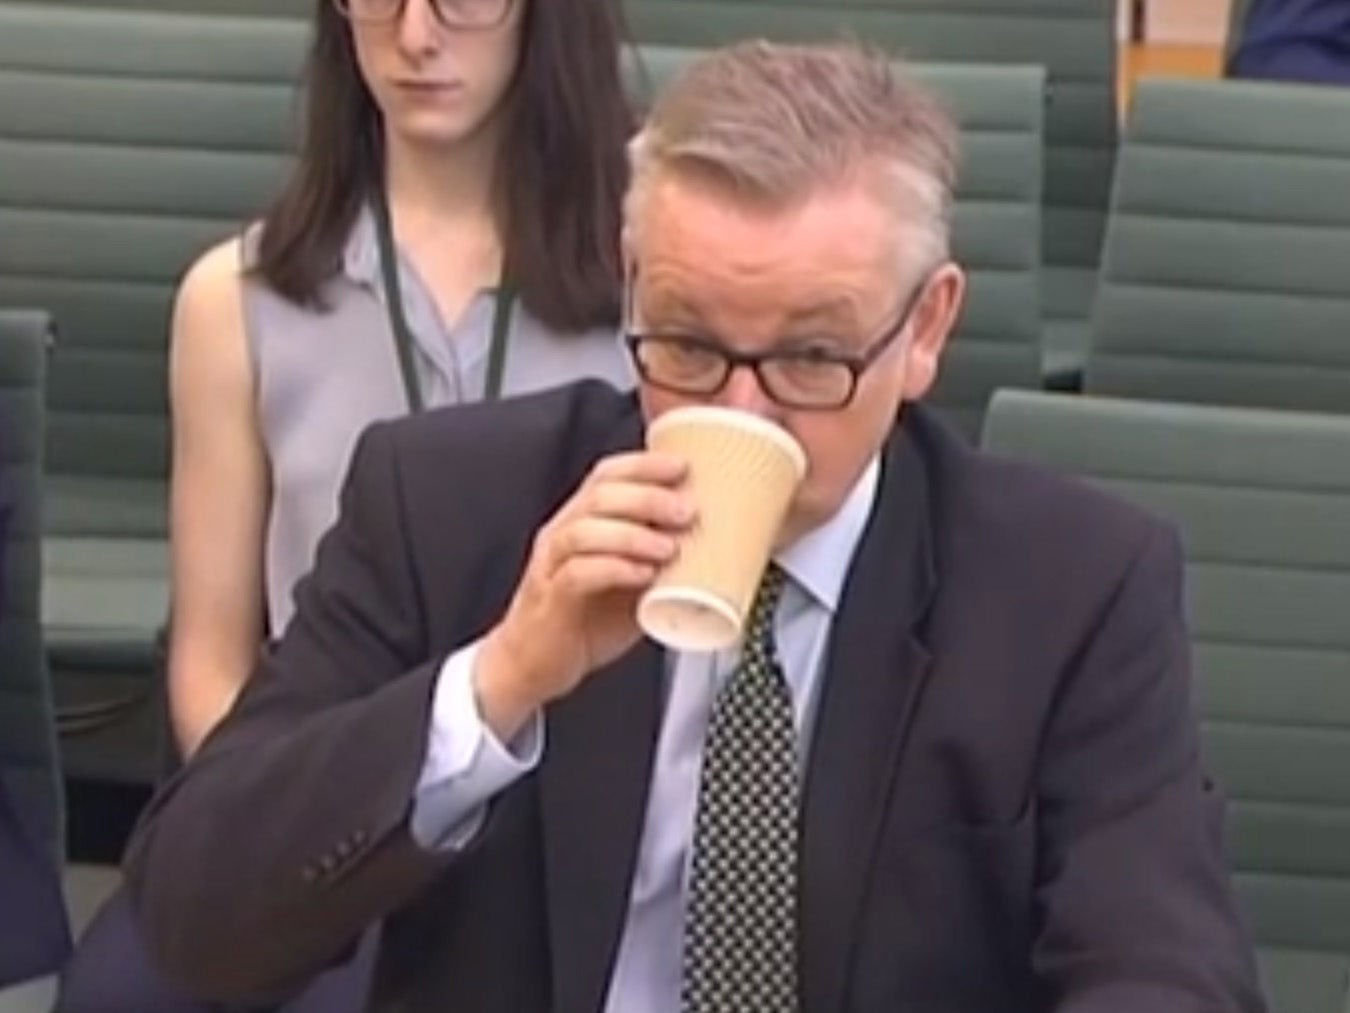 Michael Gove turns up to a meeting on the environment with a disposable coffee cup